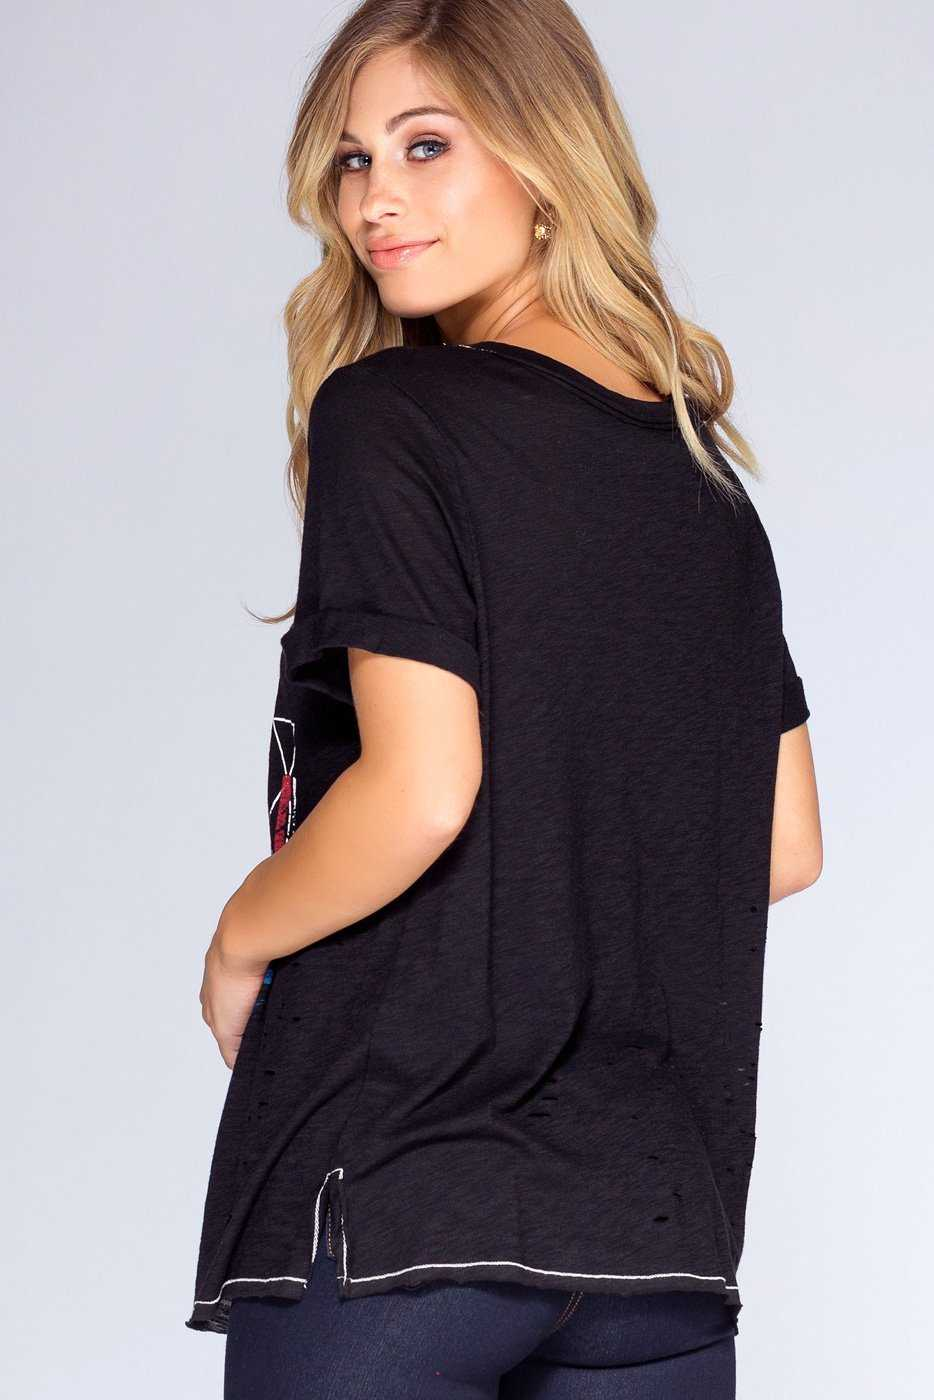 Tops - Thriller Top - Black